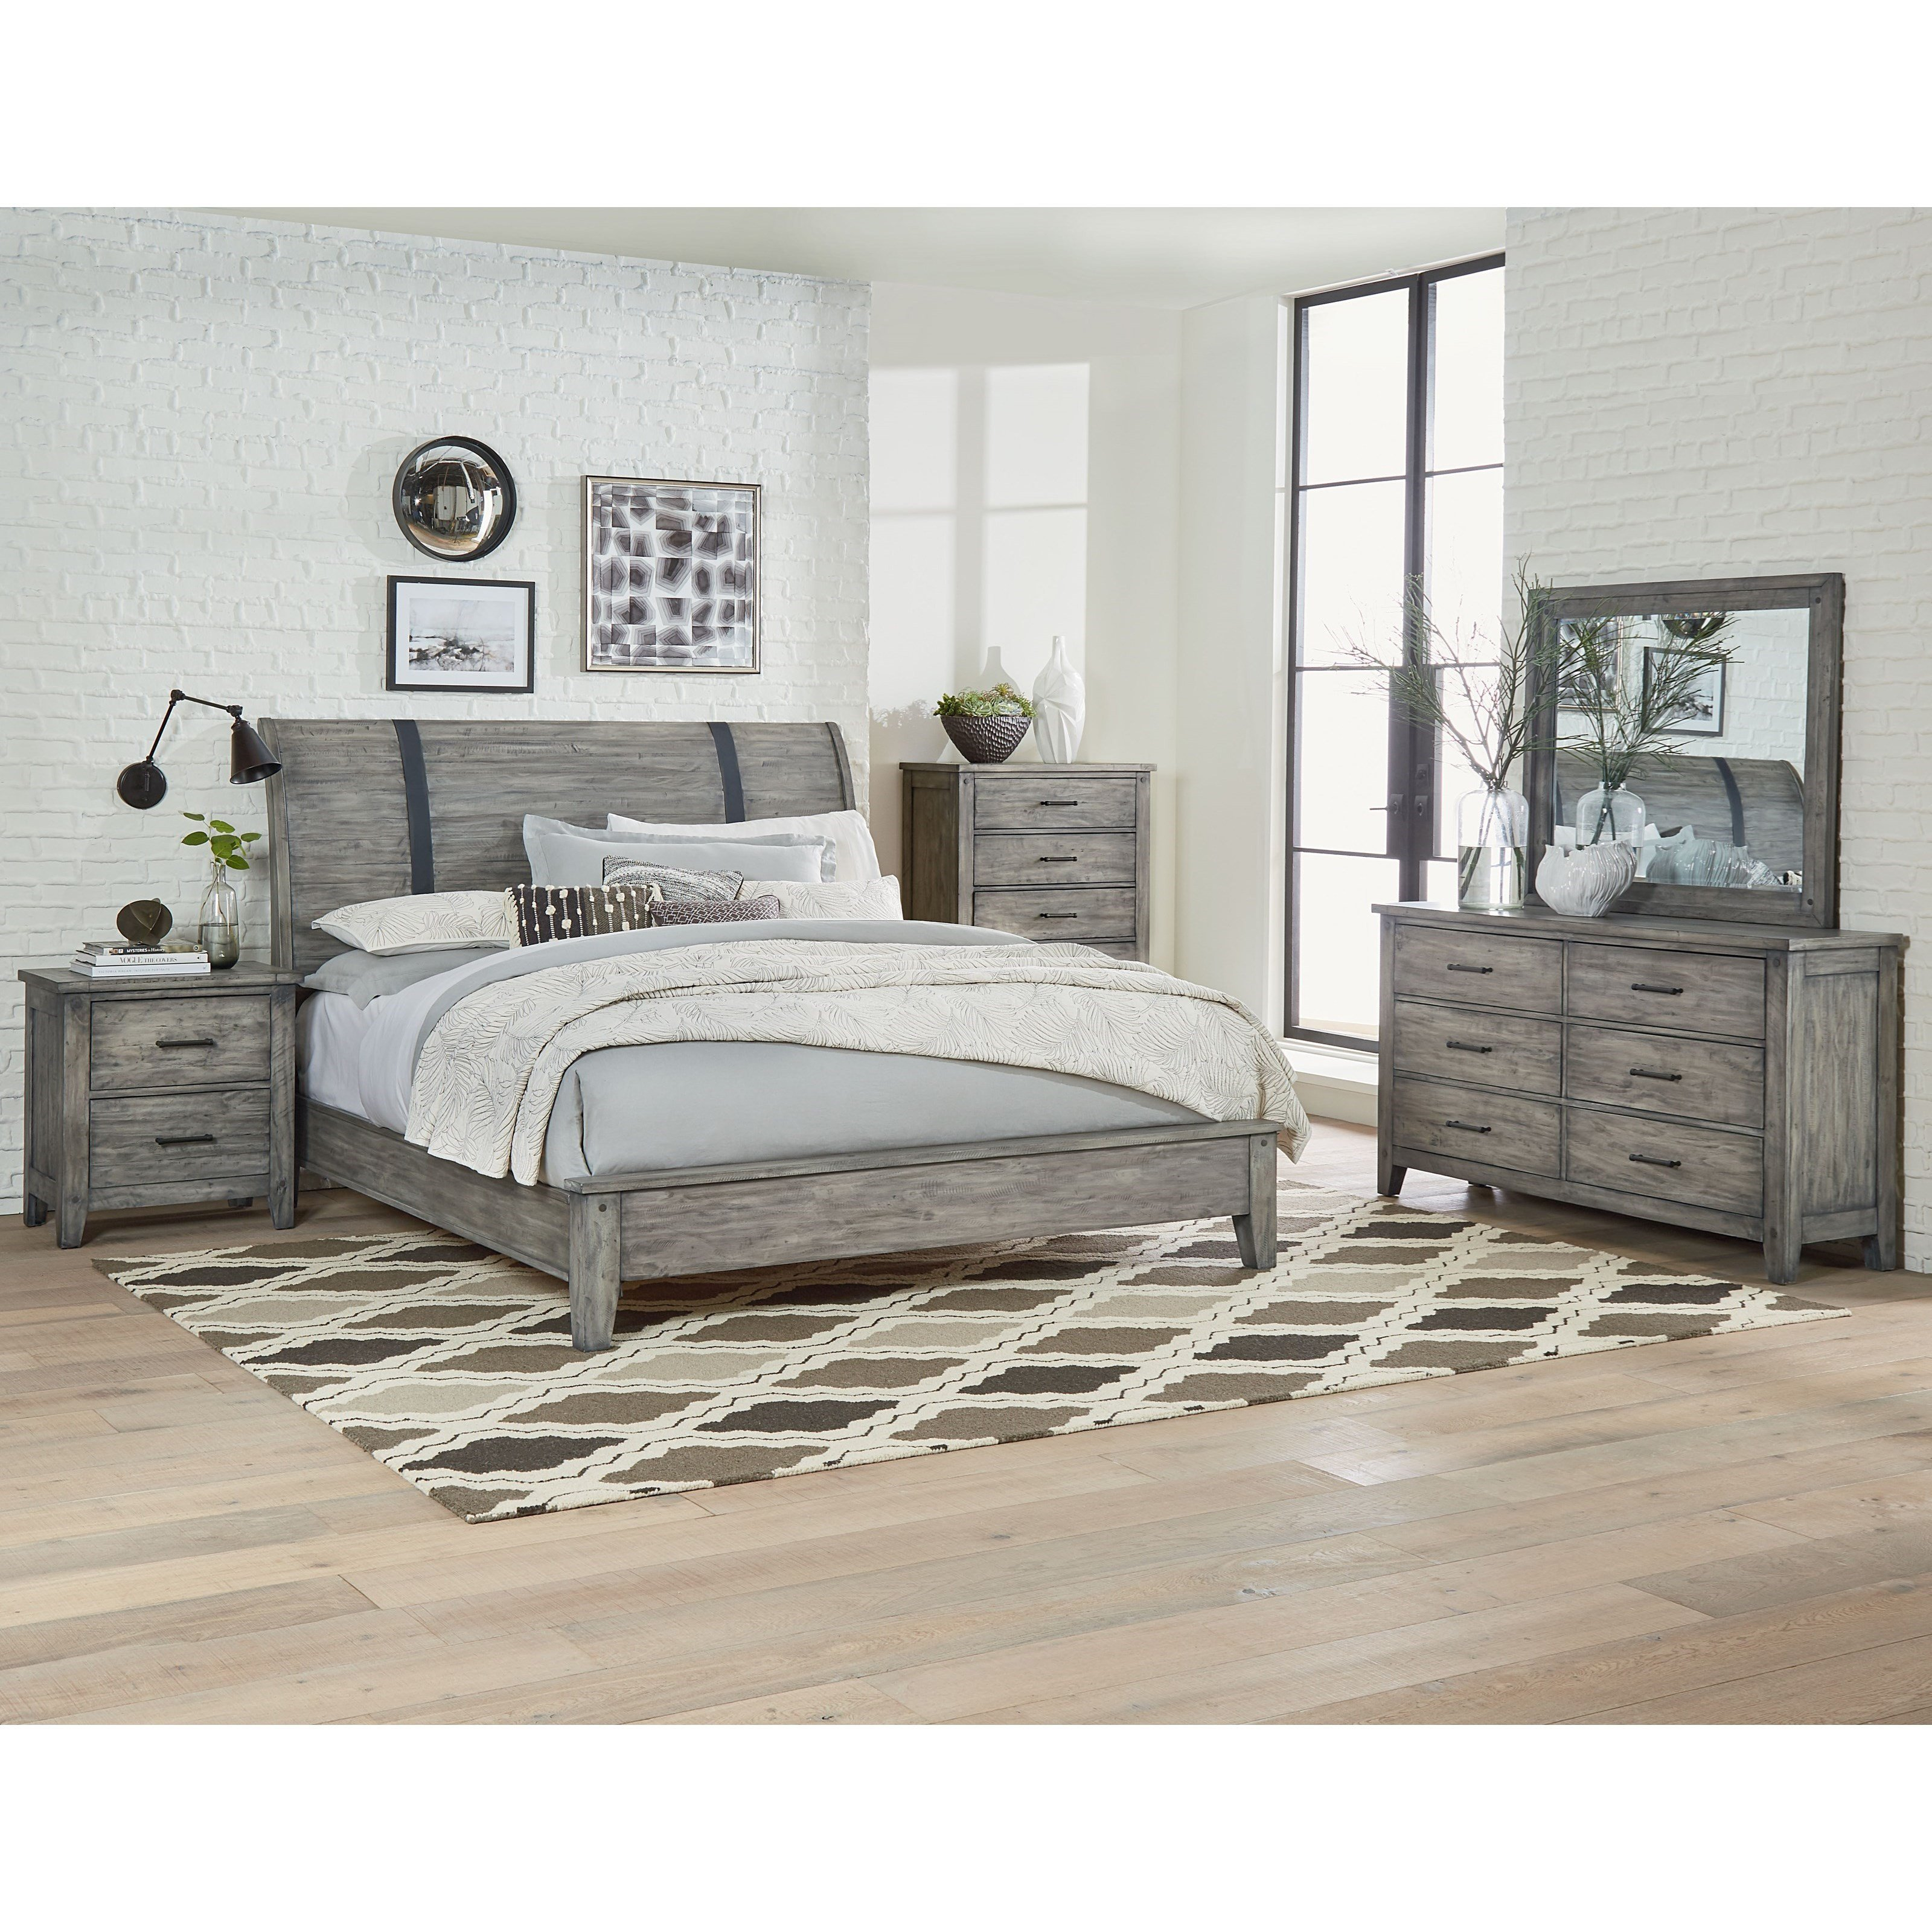 Twin Bed Bedroom Set New Standard Furniture Nelson Queen Bedroom Group